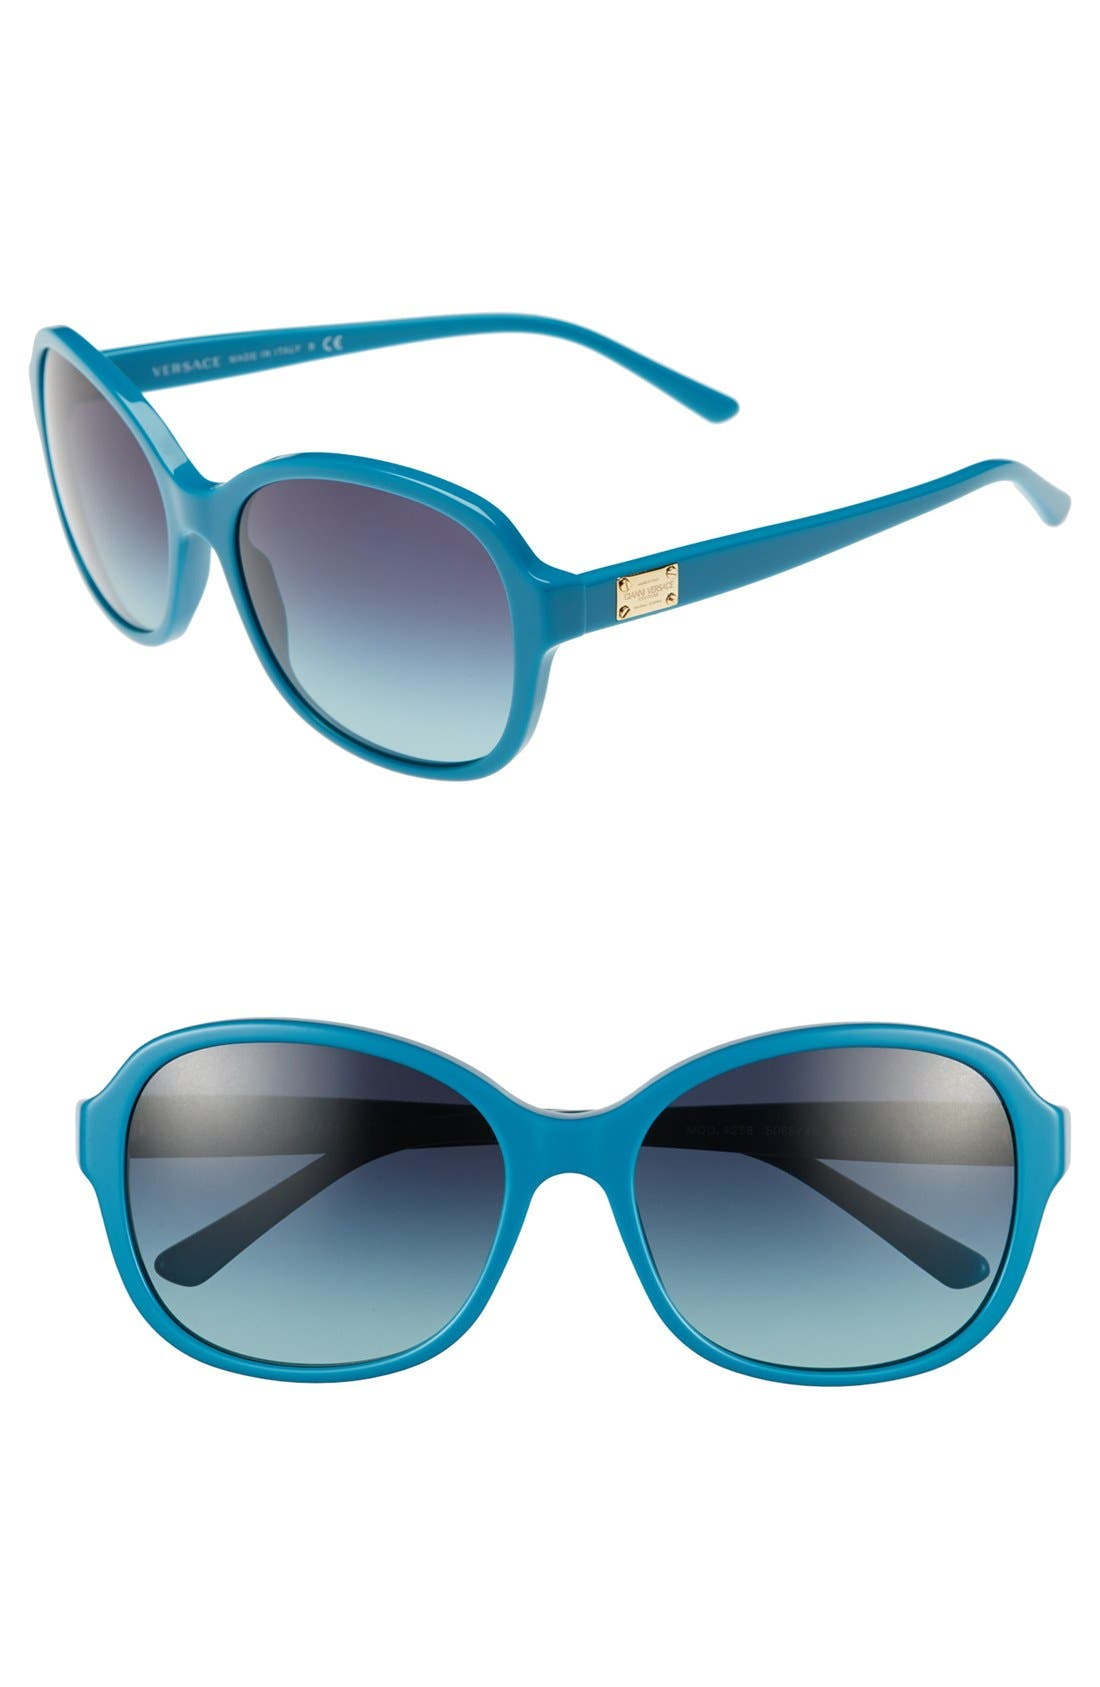 Main Image - Versace 'Pop Chic Culture' 58mm Sunglasses